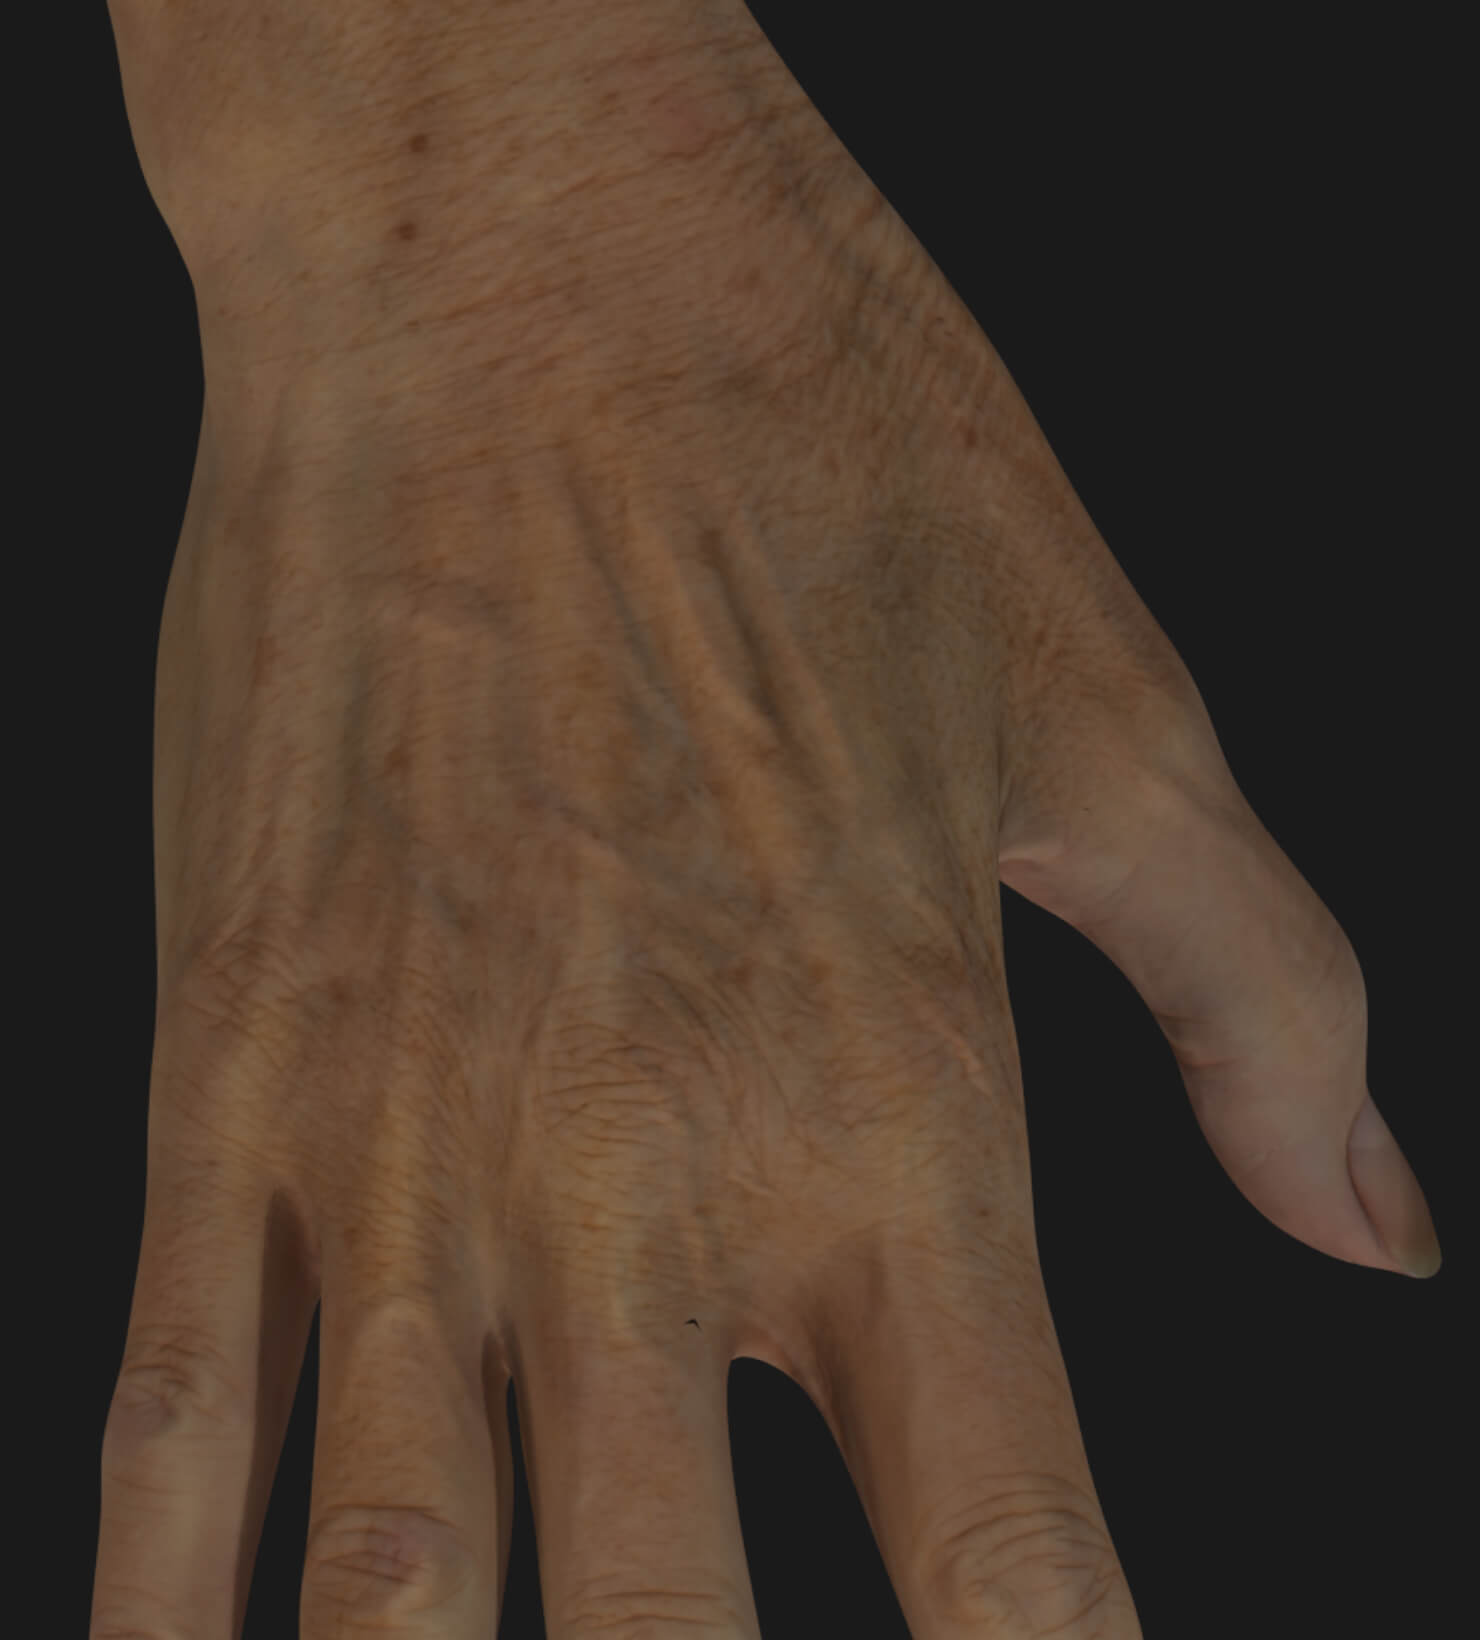 Clinique Chloé female patient's aging hand to be treated with IPL photorejuvenation